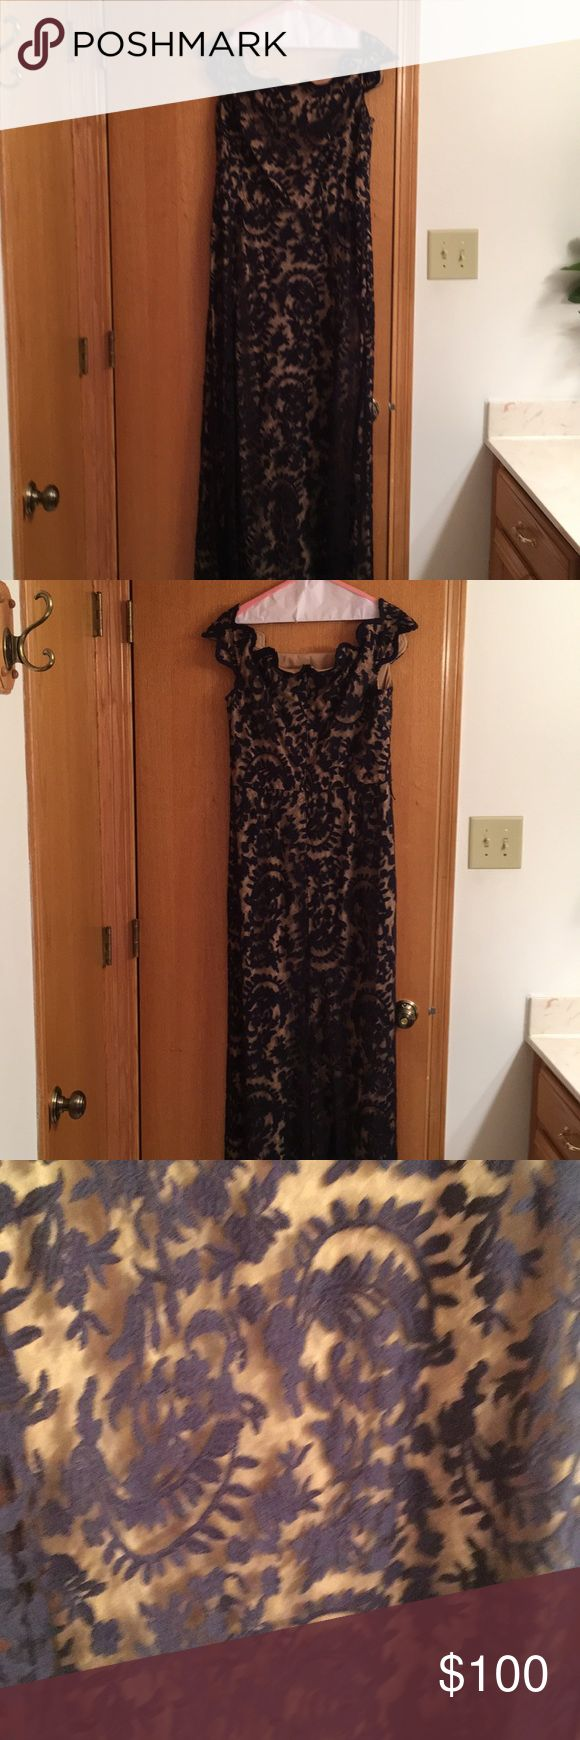 Cute lace dress for any occasion Dark blue and beige lace dress Tadashi Shoji Dresses Prom